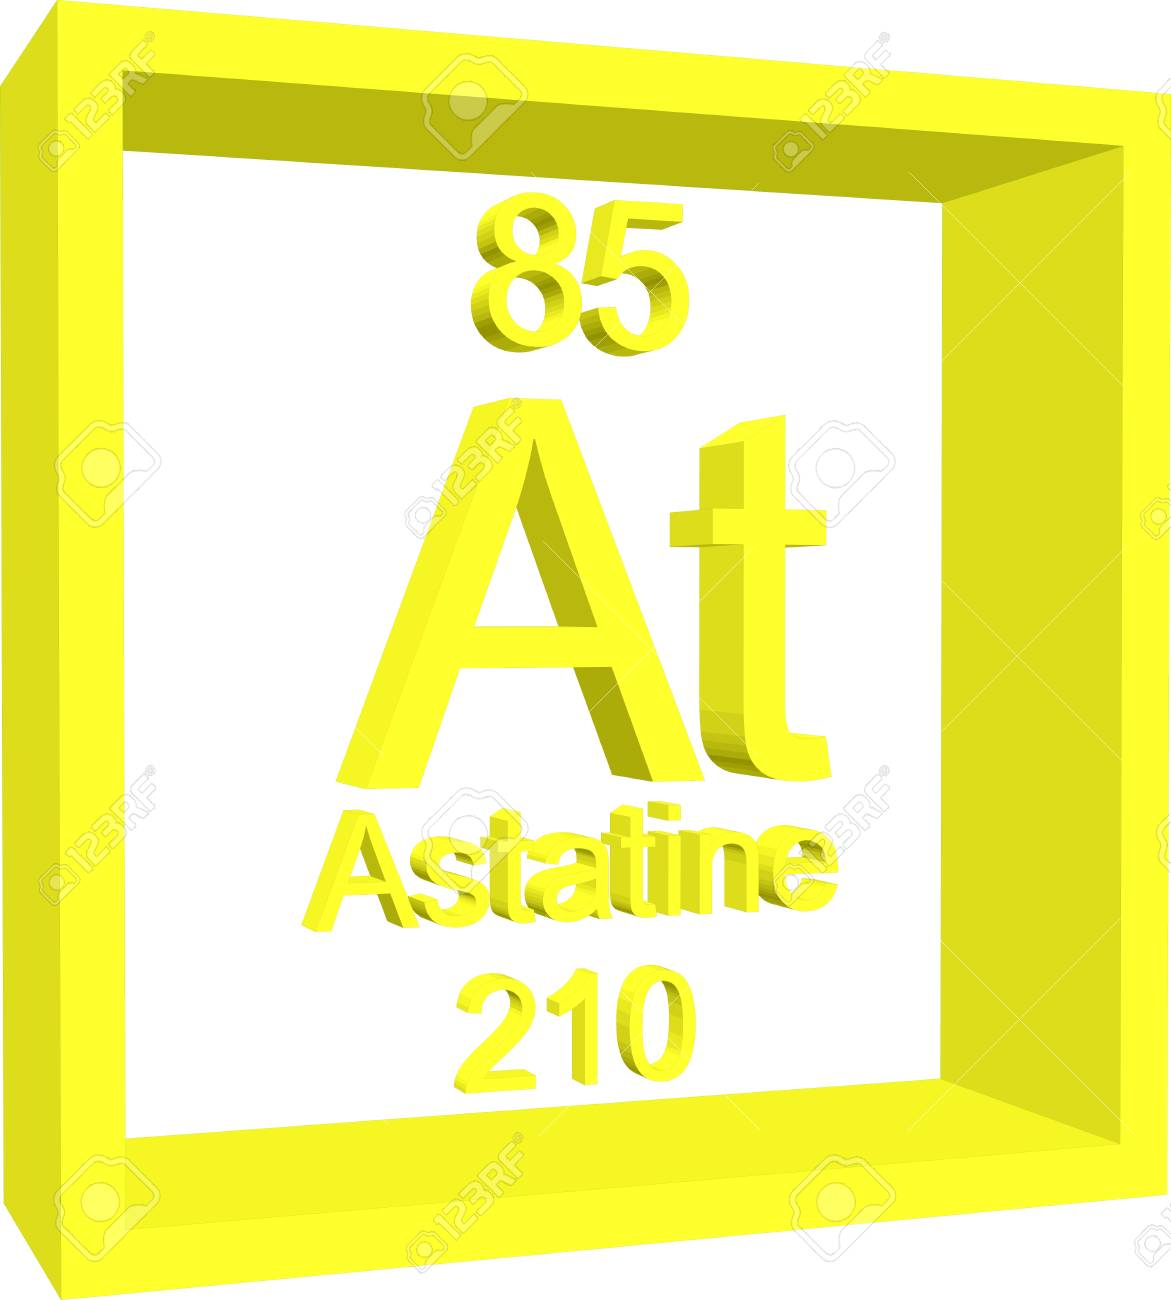 Periodic table of elements astatine royalty free cliparts vectors periodic table of elements astatine stock vector 57967481 urtaz Image collections